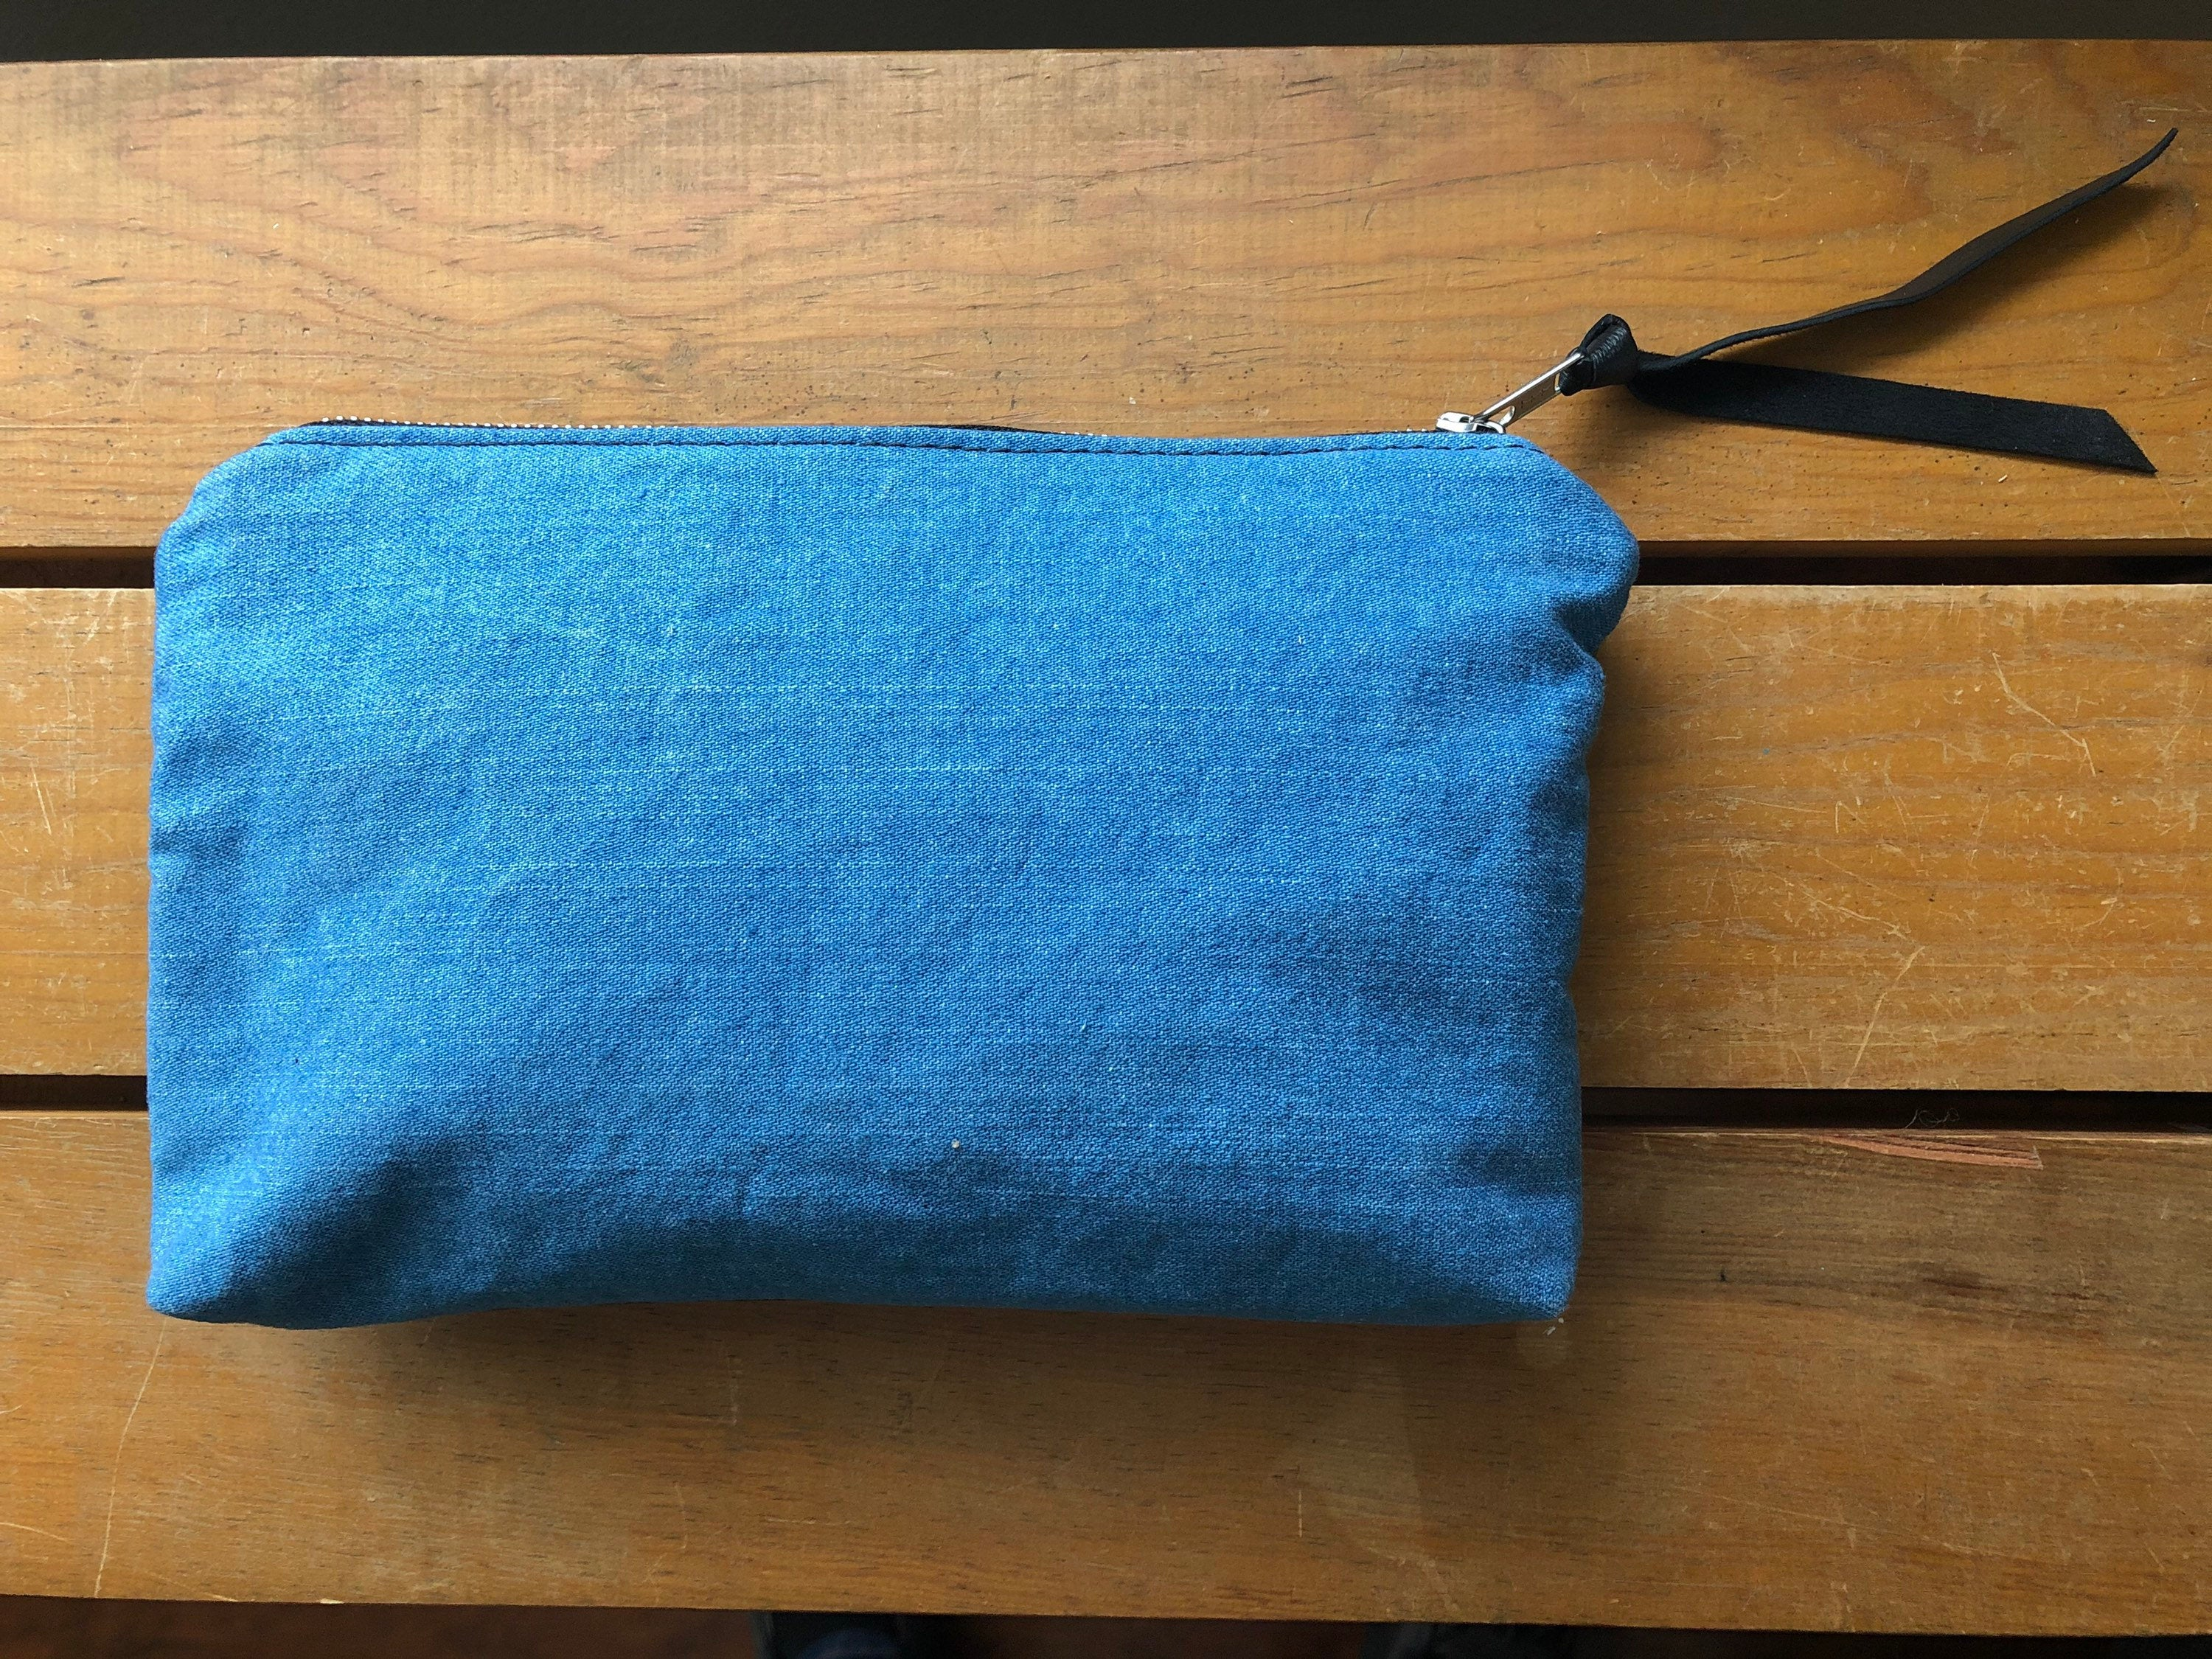 Blue denim clutch back and black leather pull resting on table